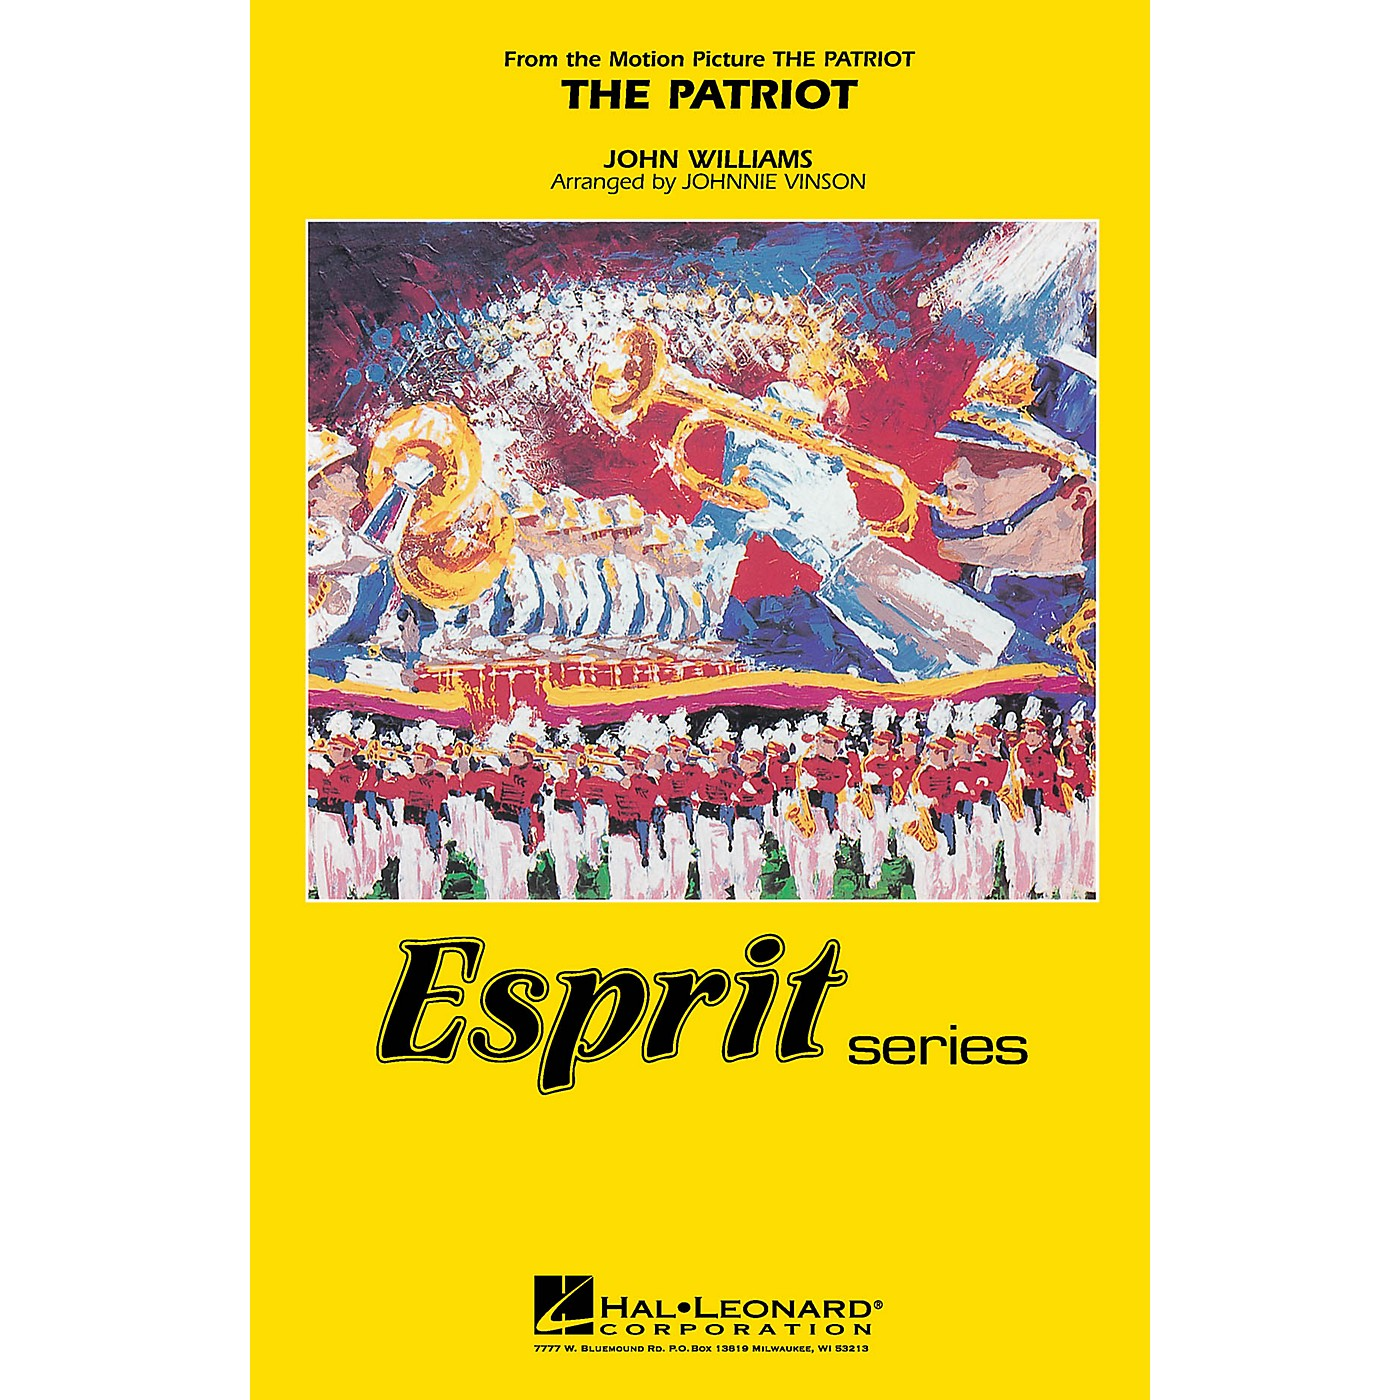 Hal Leonard The Patriot Marching Band Level 3 Arranged by Johnnie Vinson thumbnail